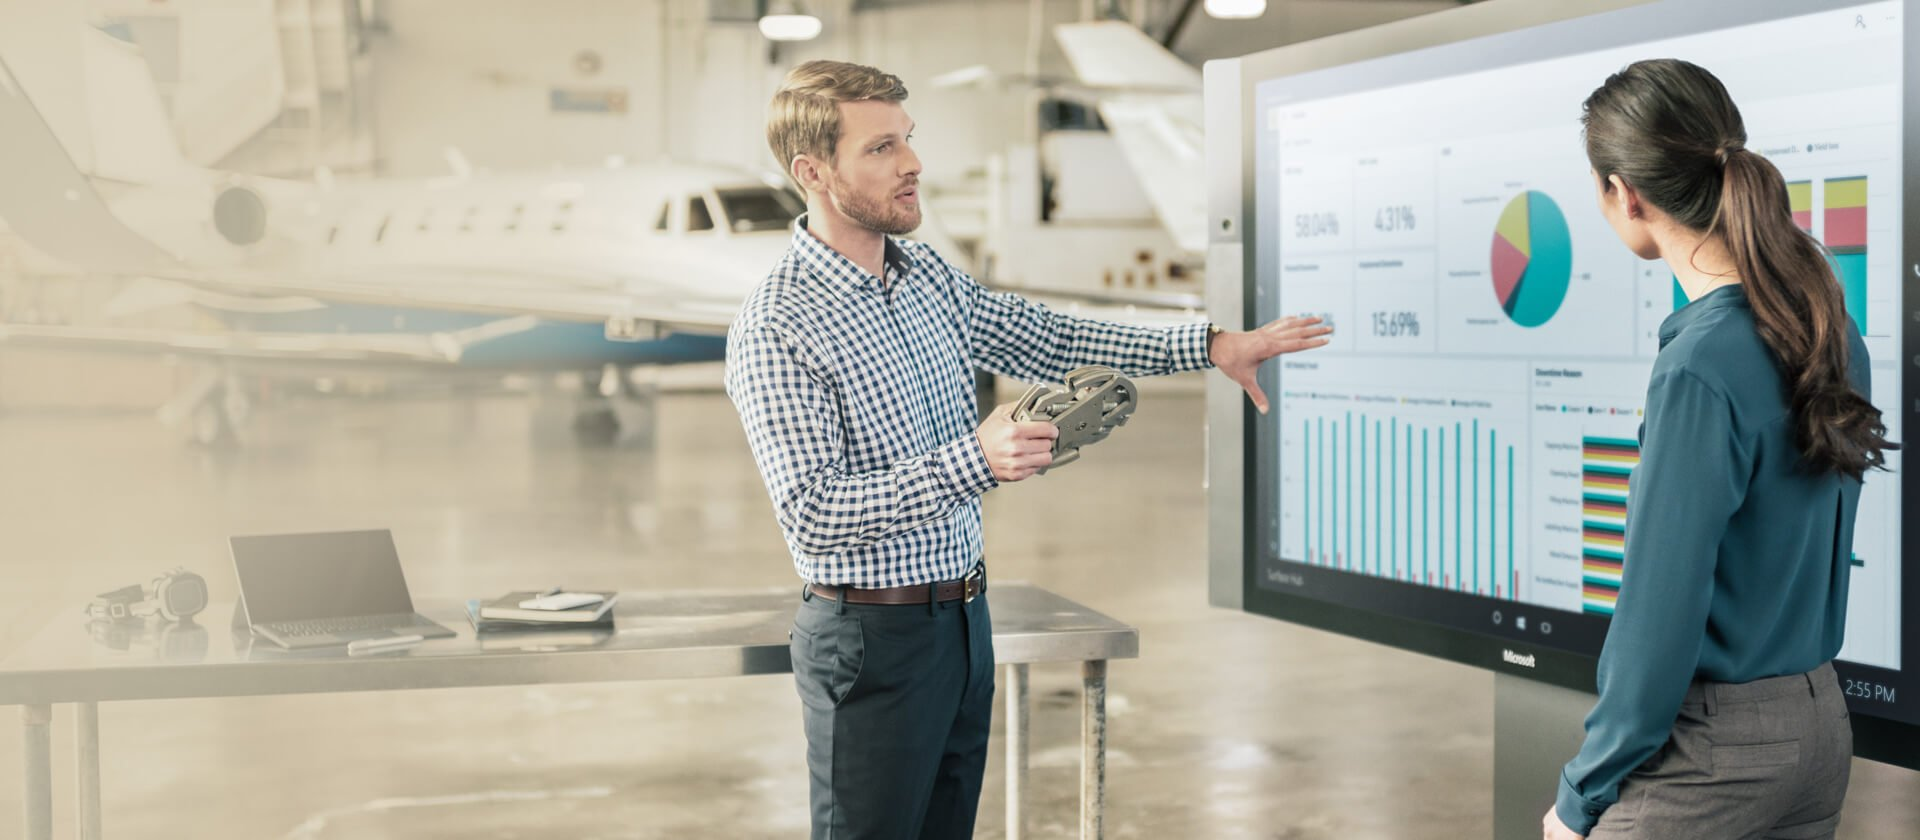 Introducing Microsoft Surface Hub - Agile Collaborative Working